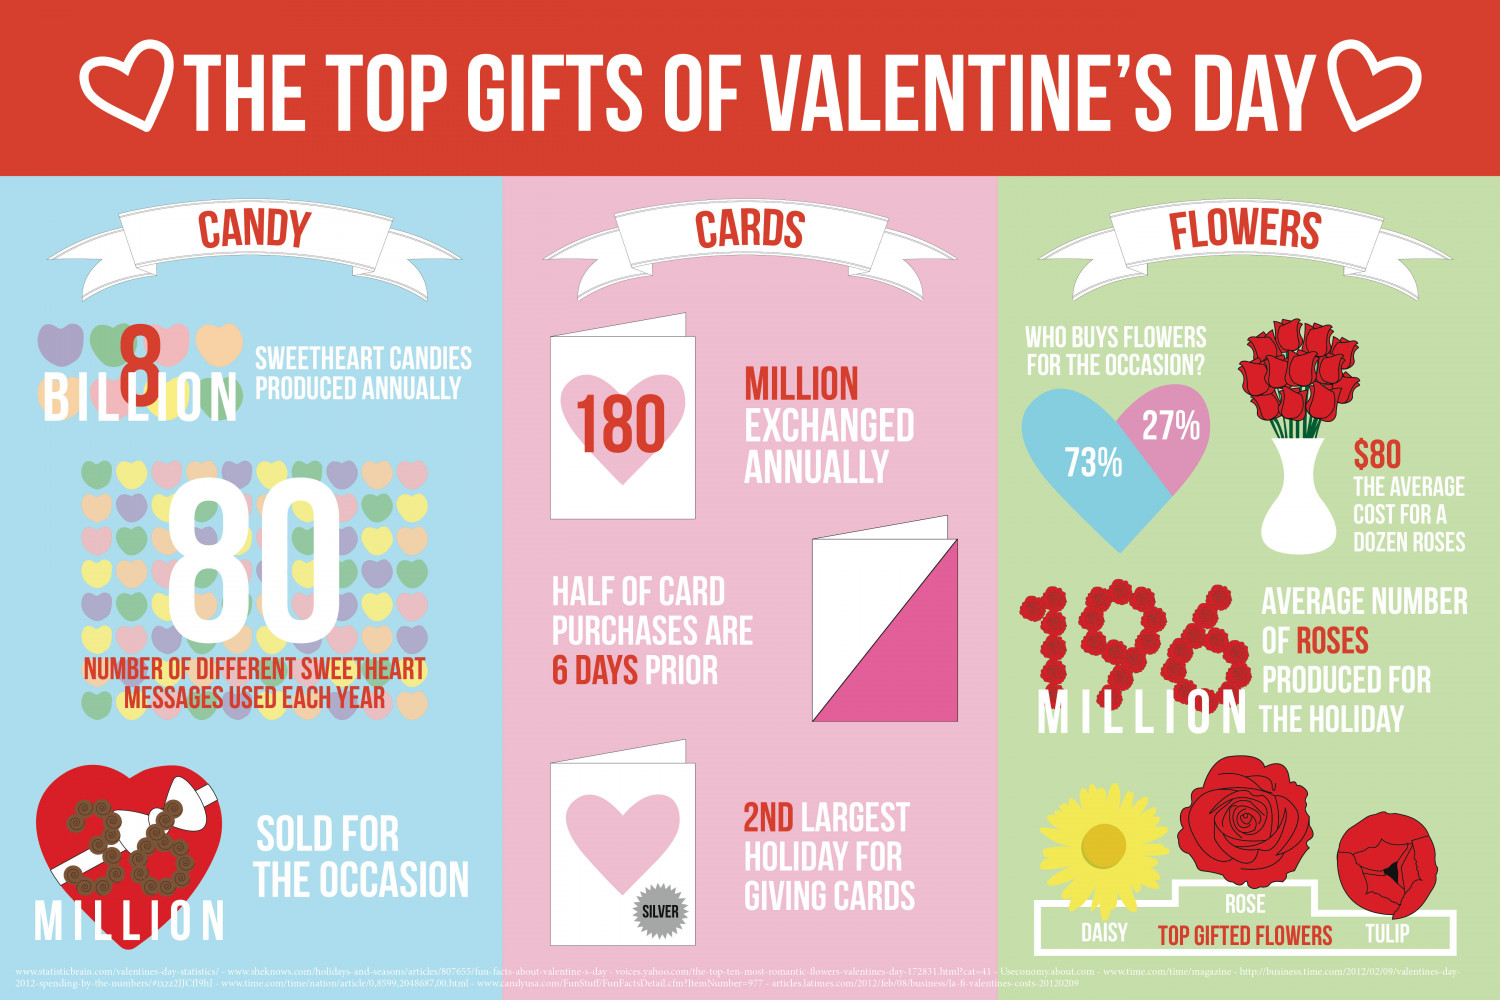 The Top Gifts of Valentine's Day Infographic